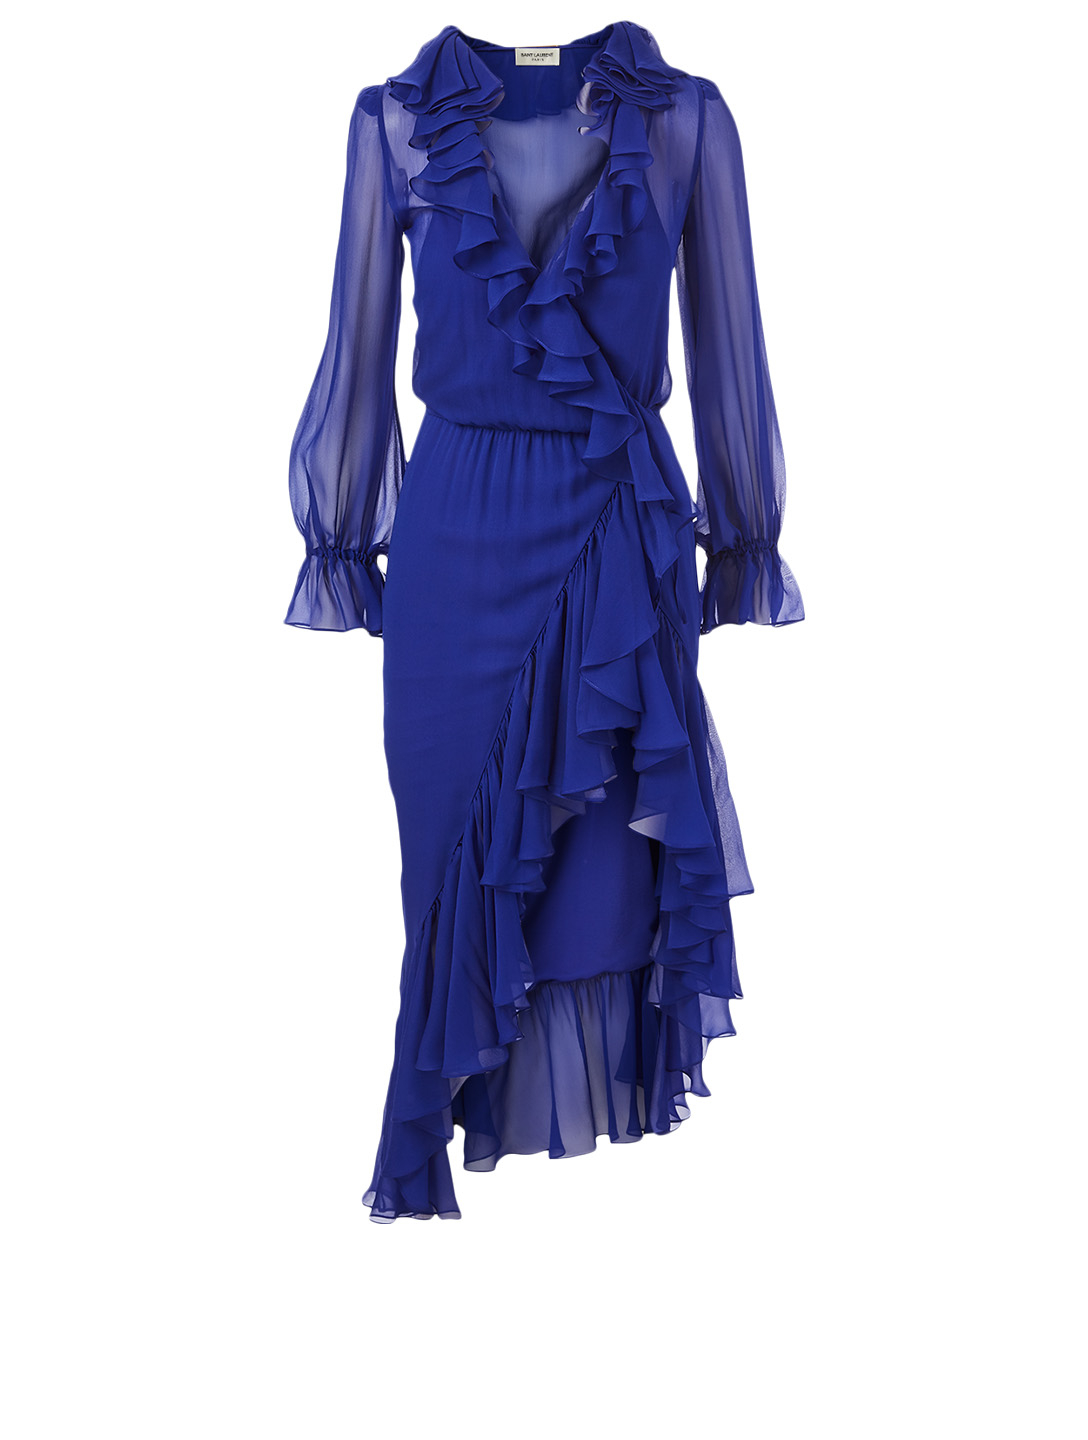 SAINT LAURENT Silk Ruffled Asymmetric Dress Women's Blue